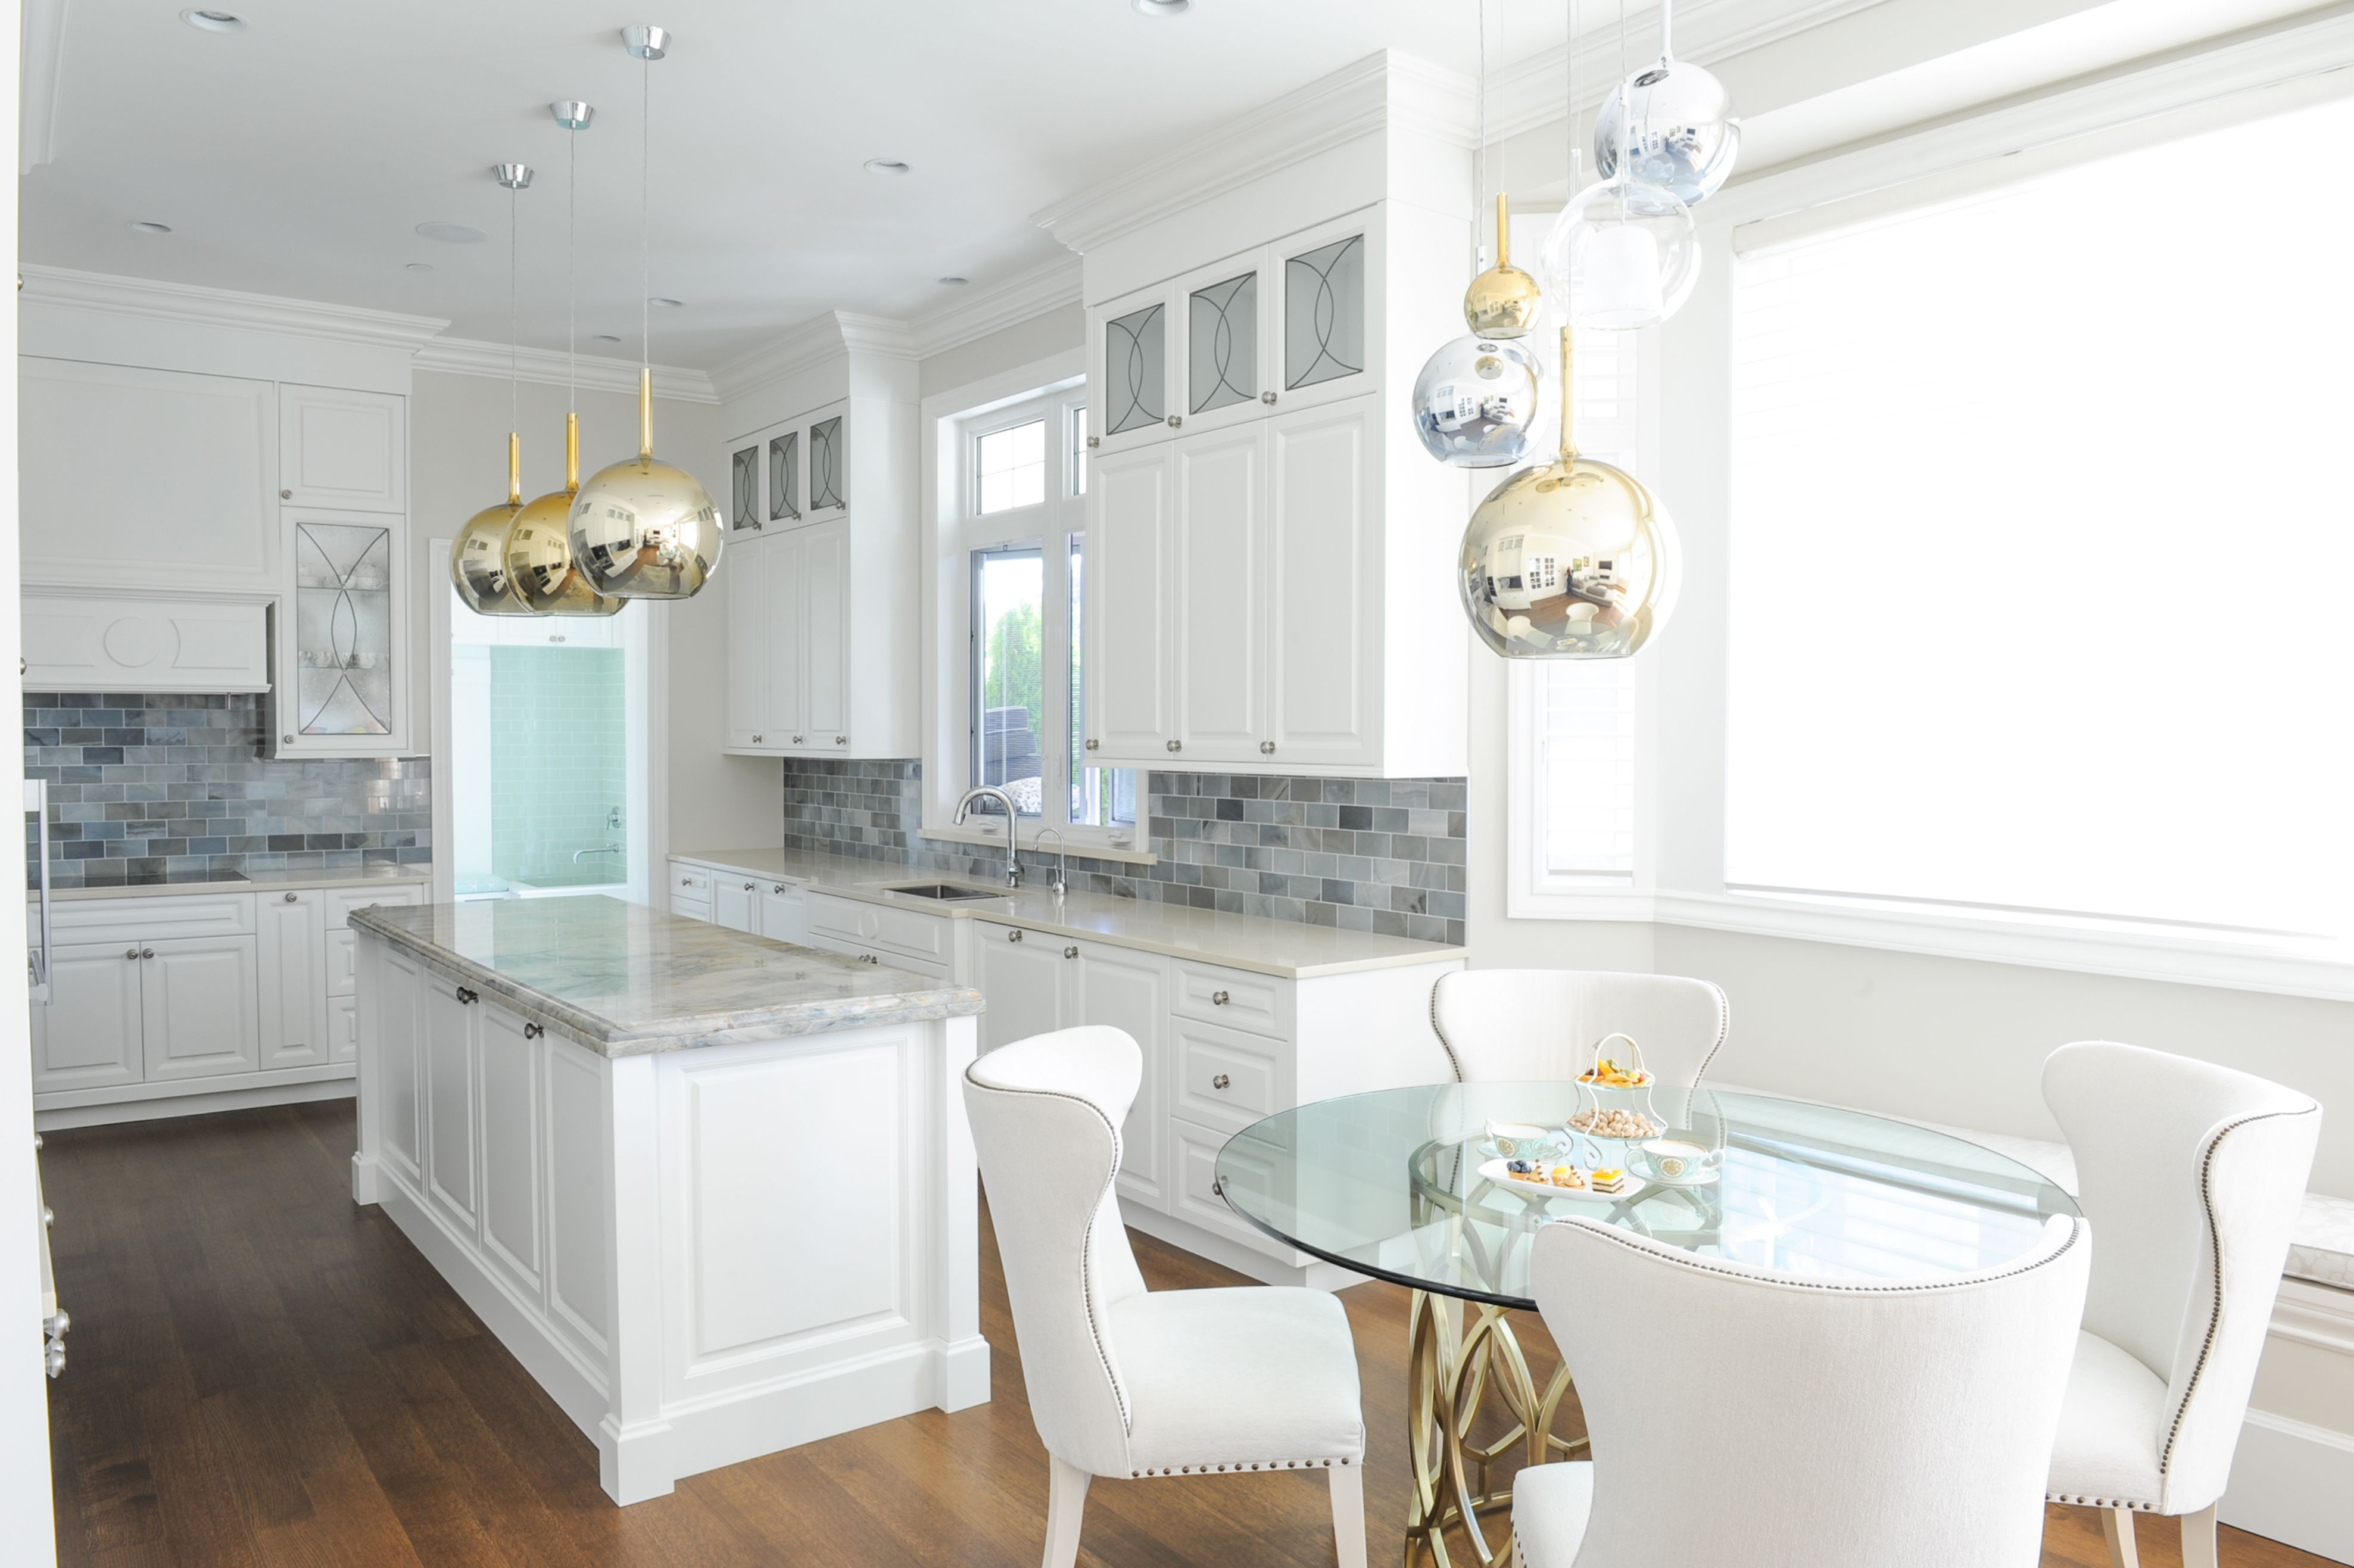 kitchen glass pendant lighting. Kitchen Designed By Enviable Designs - A Mixture Of Silver, Gold And Glass Pendant Lights Lighting U